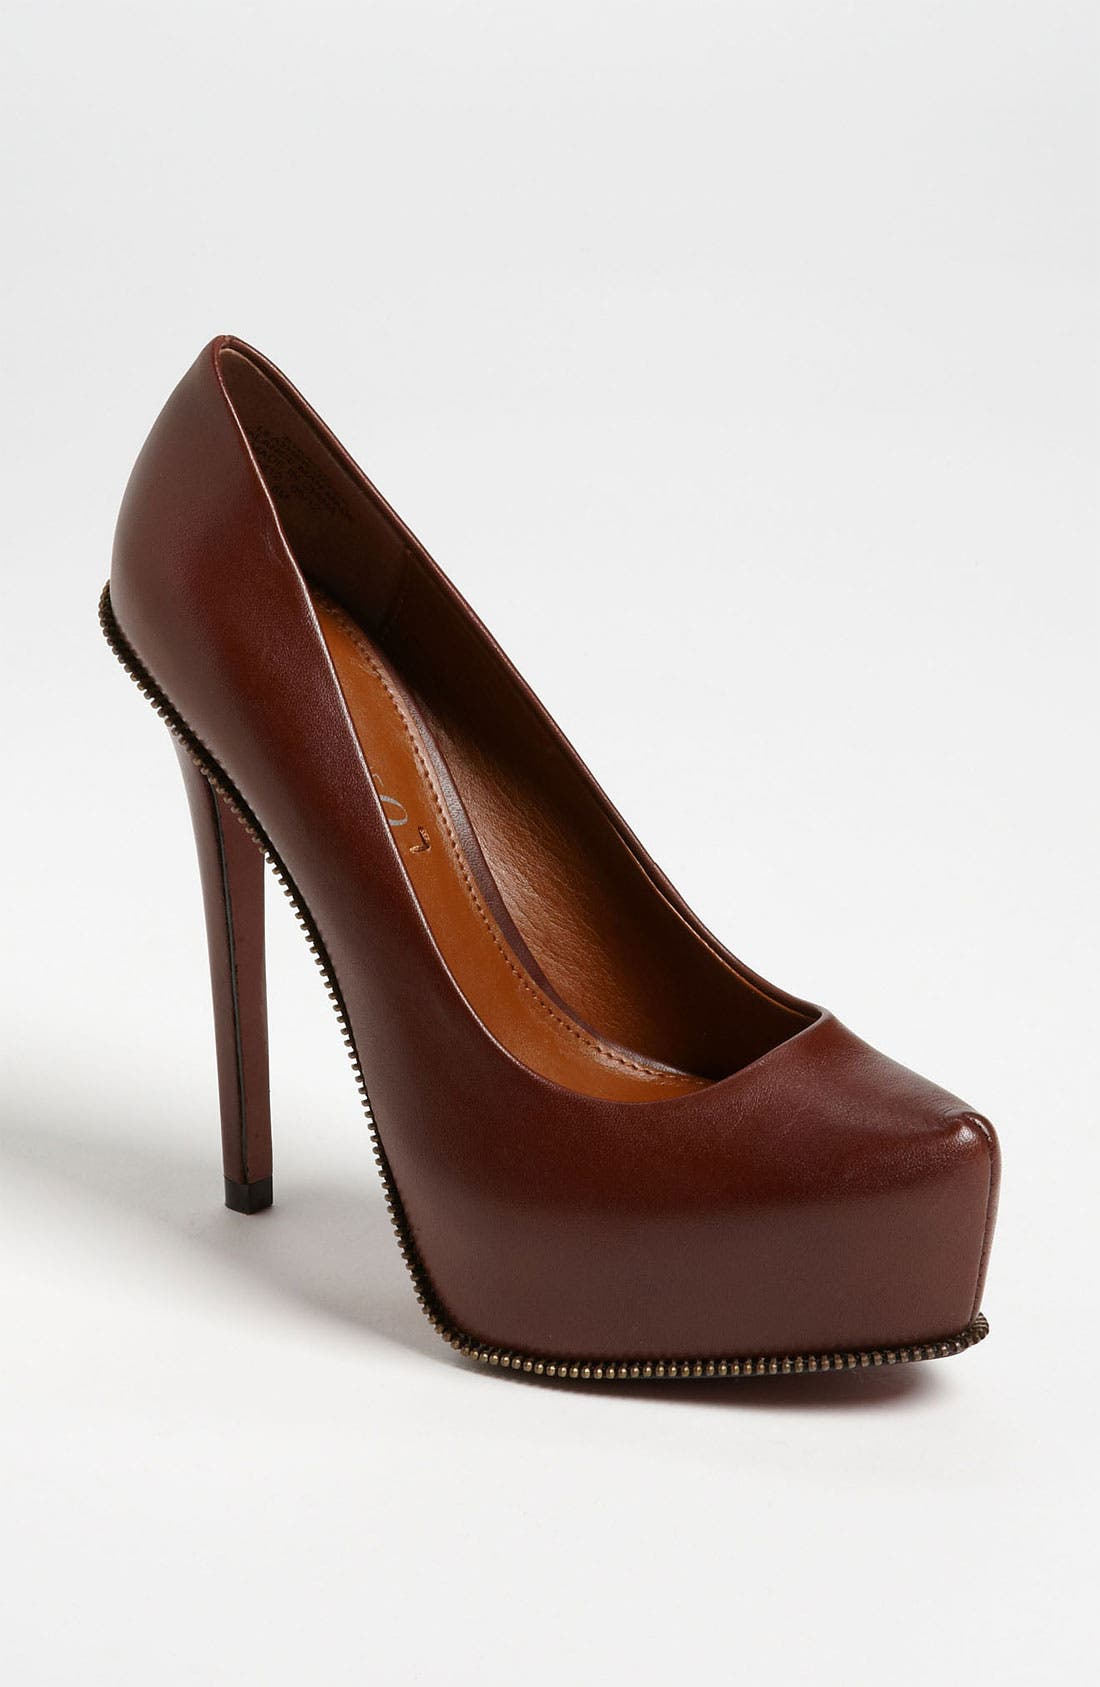 Main Image - Boutique 9 'Kaylie' Pump